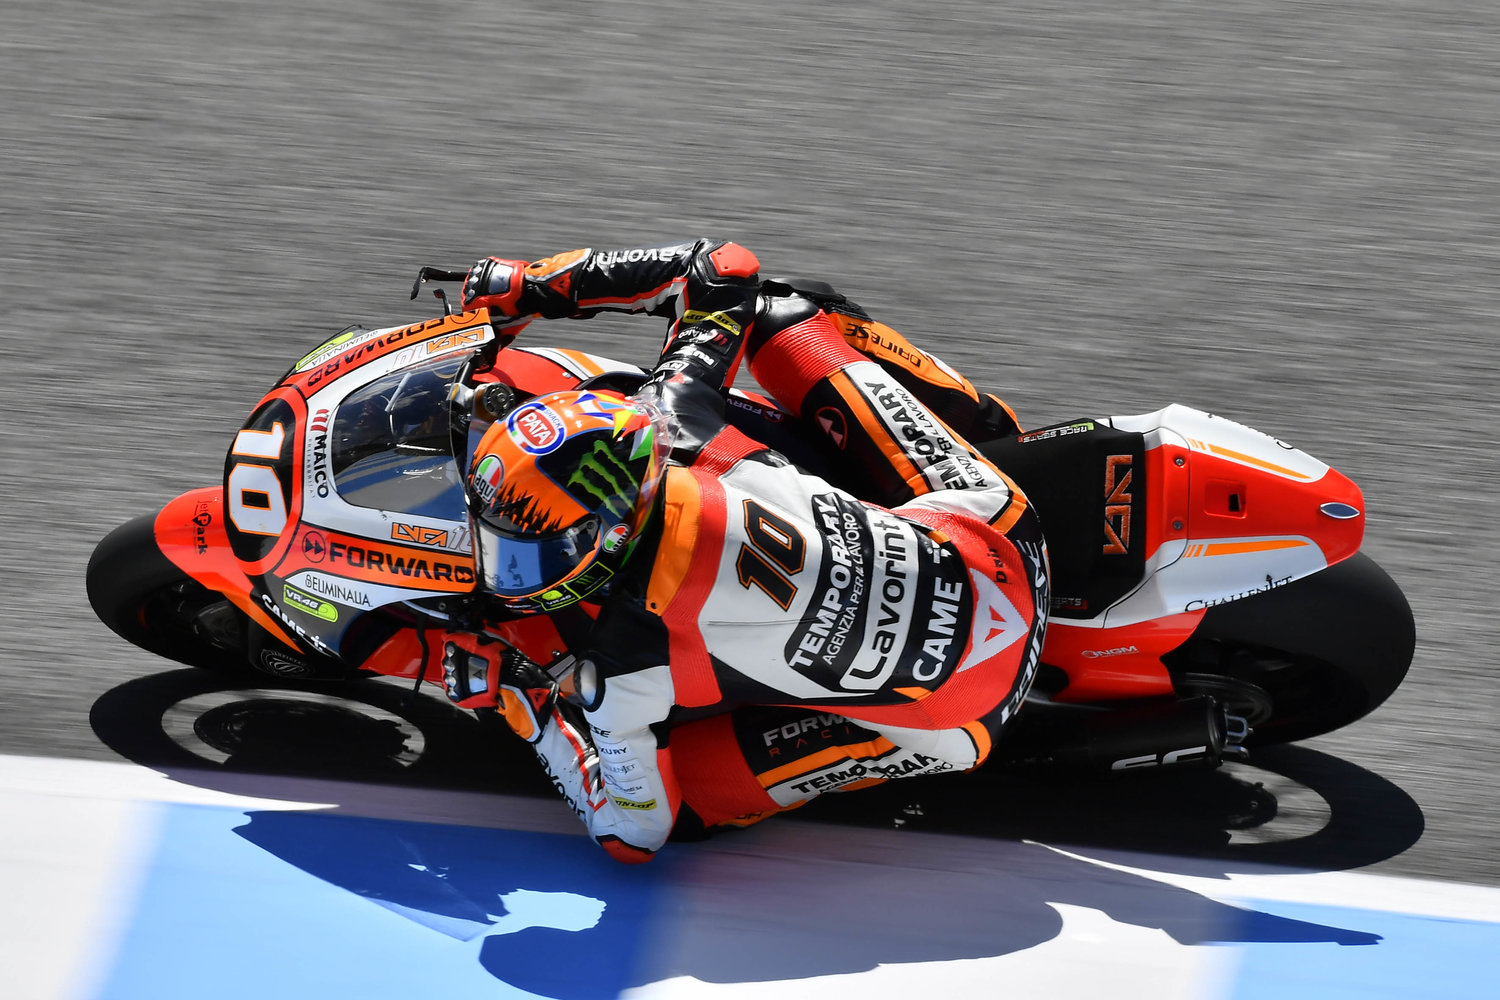 Fabulous fifth and best career result for Marini in Jerez